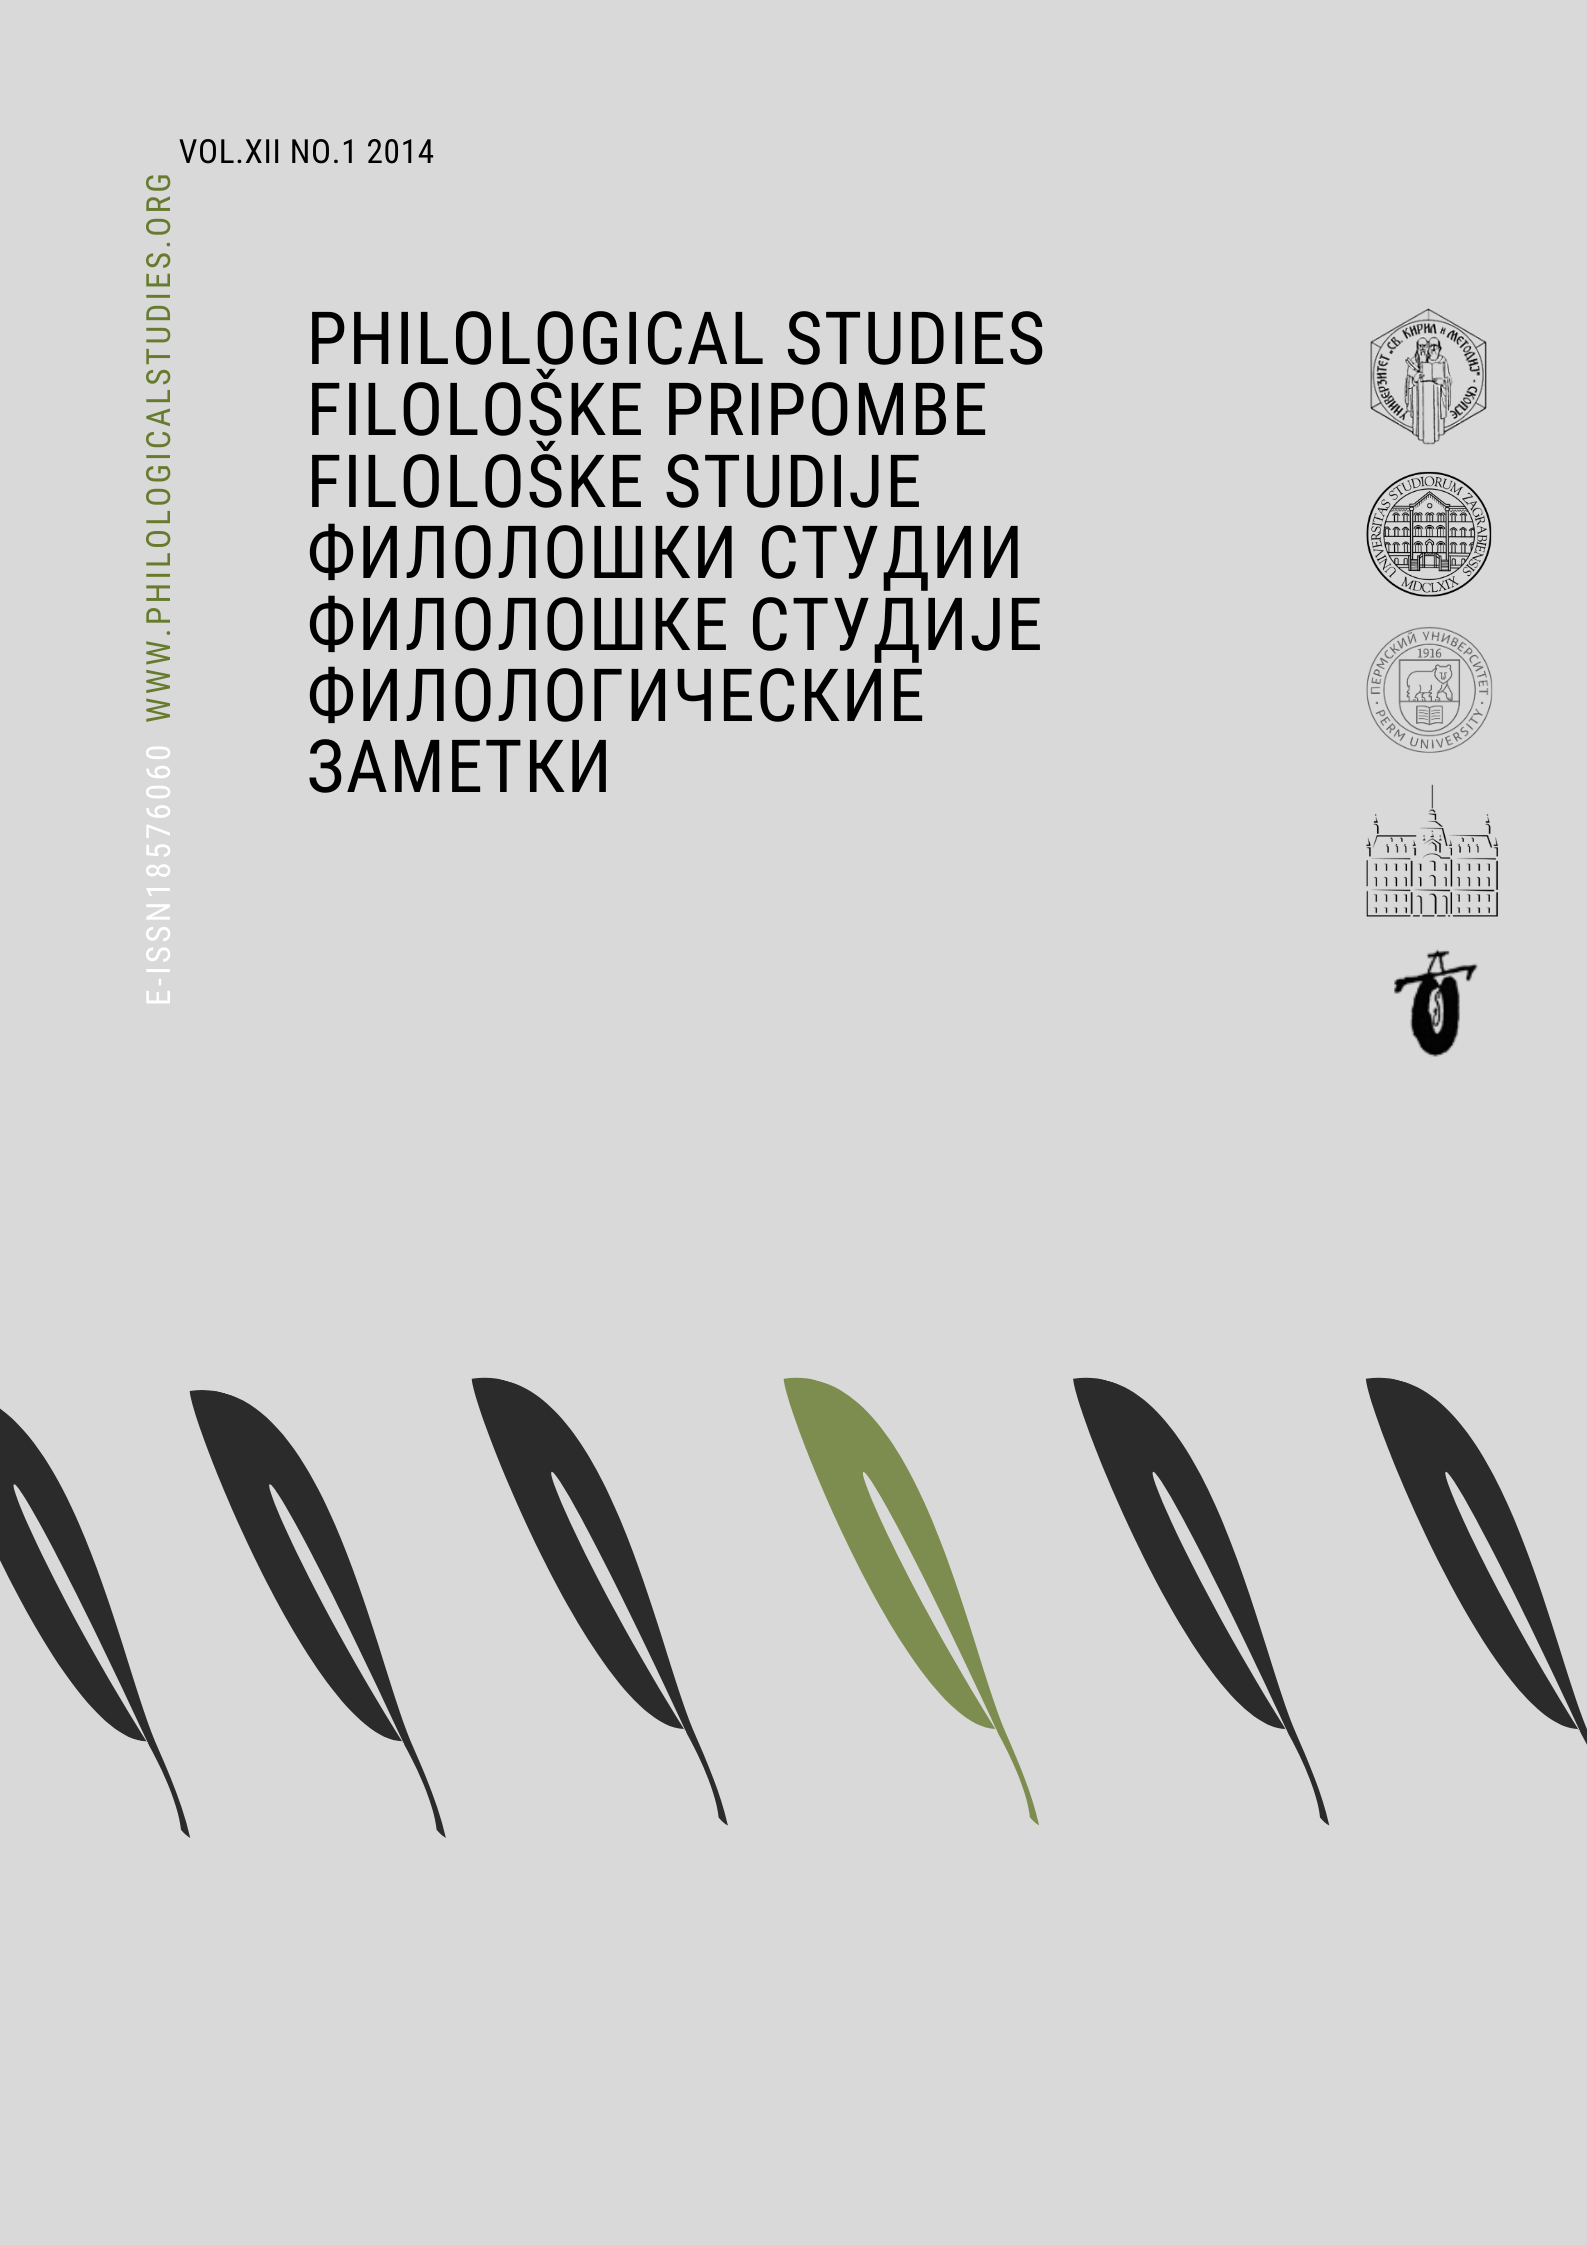 Philological Studies Vol.12 No.1 2014